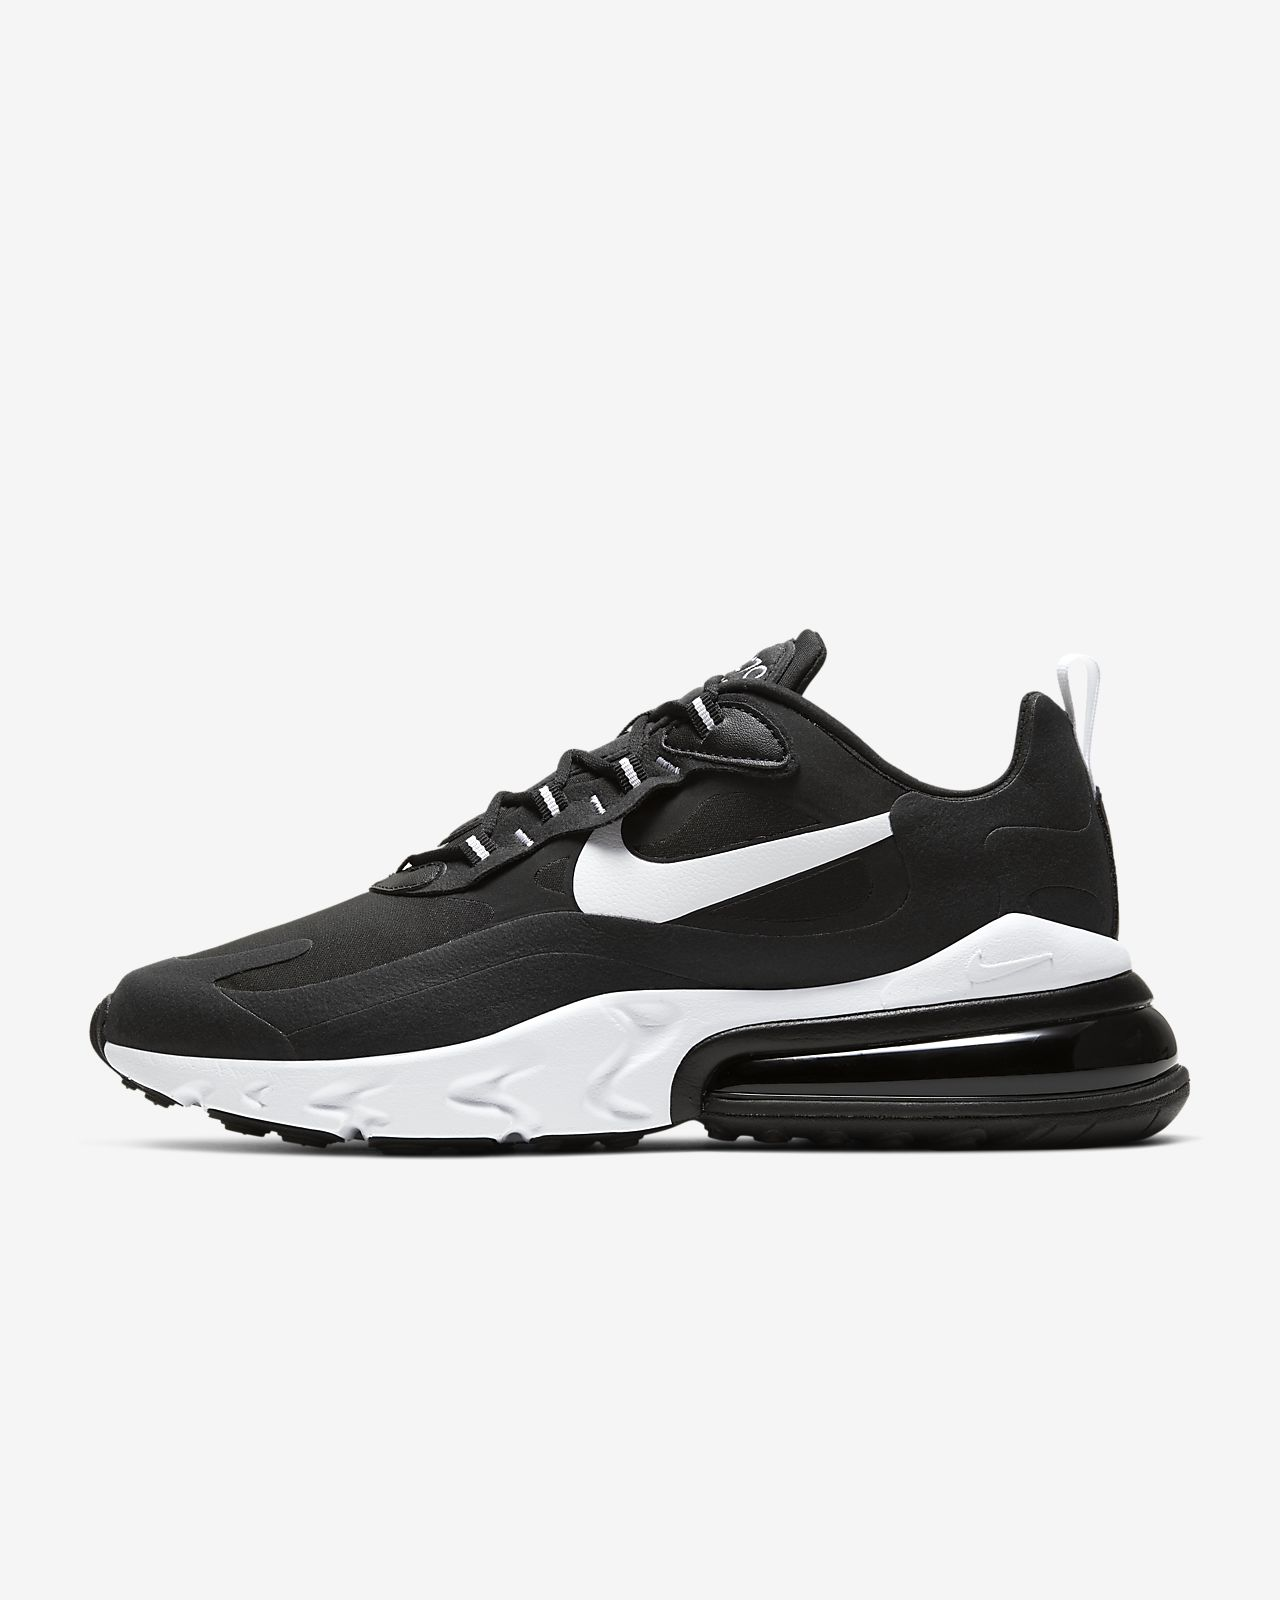 Nike Air Max 270 React Herenschoen. Nike NL